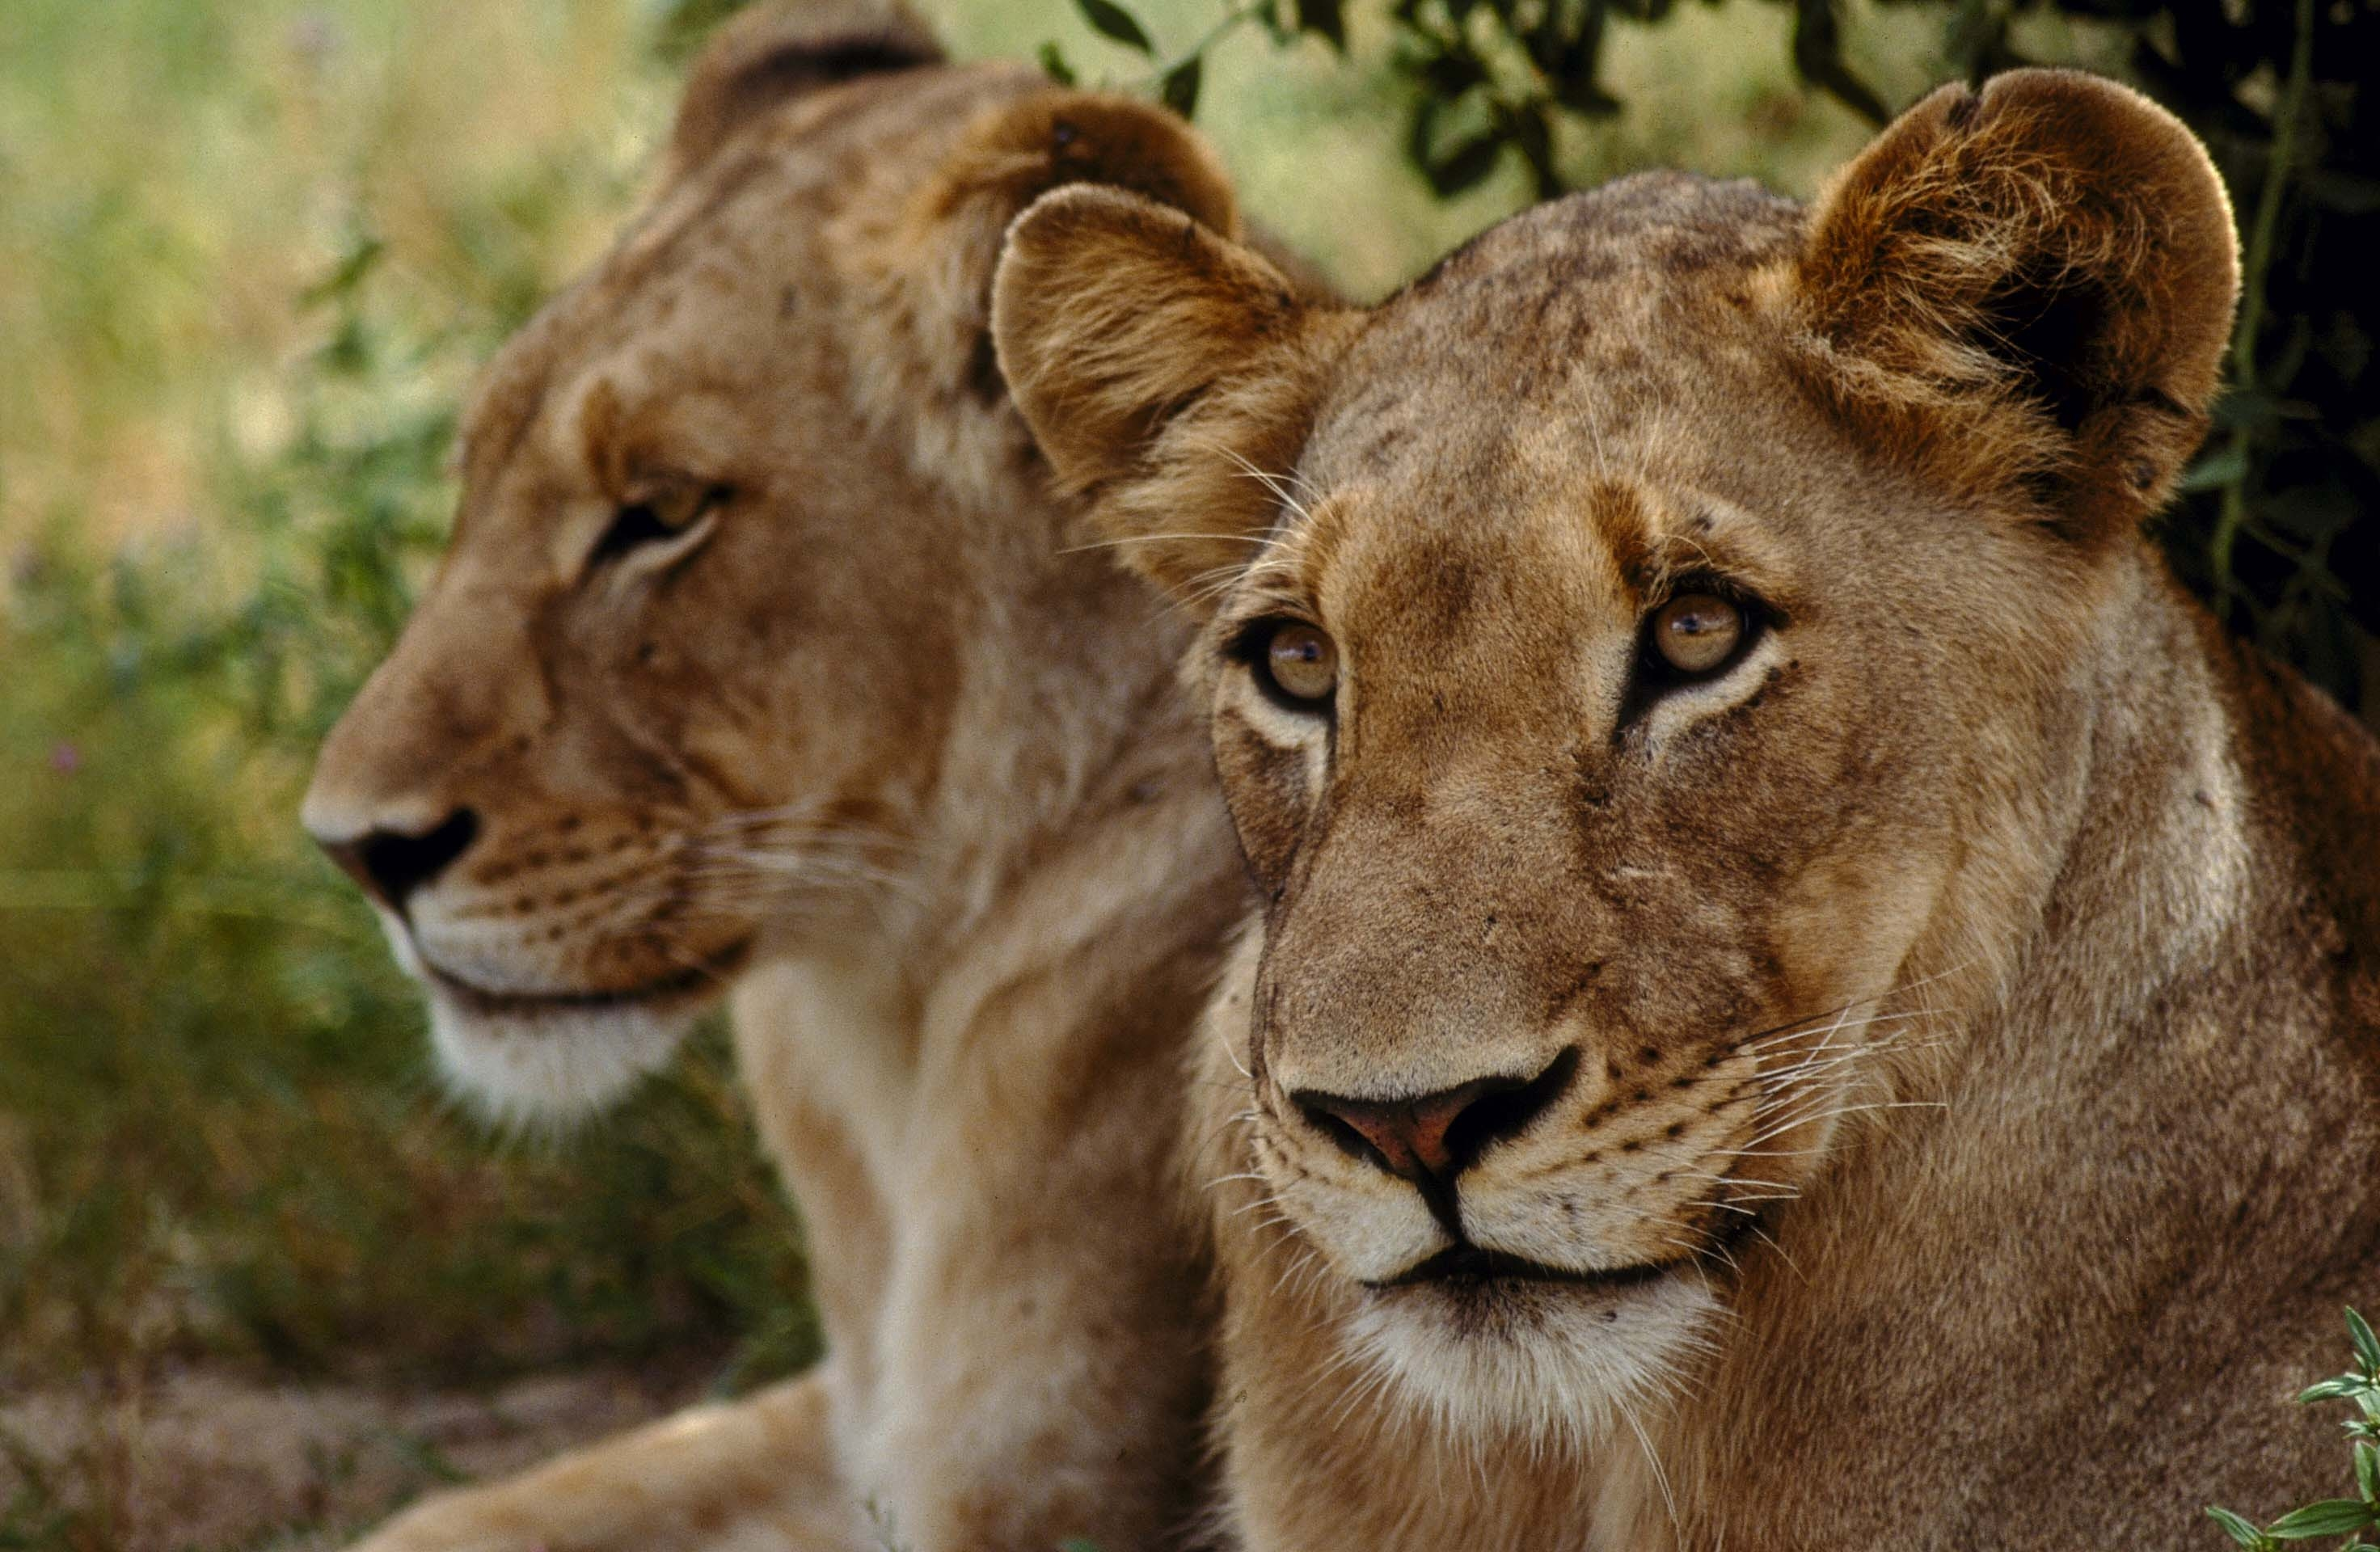 74664 download wallpaper Animals, Muzzle, Couple, Pair, Predator, Lions screensavers and pictures for free